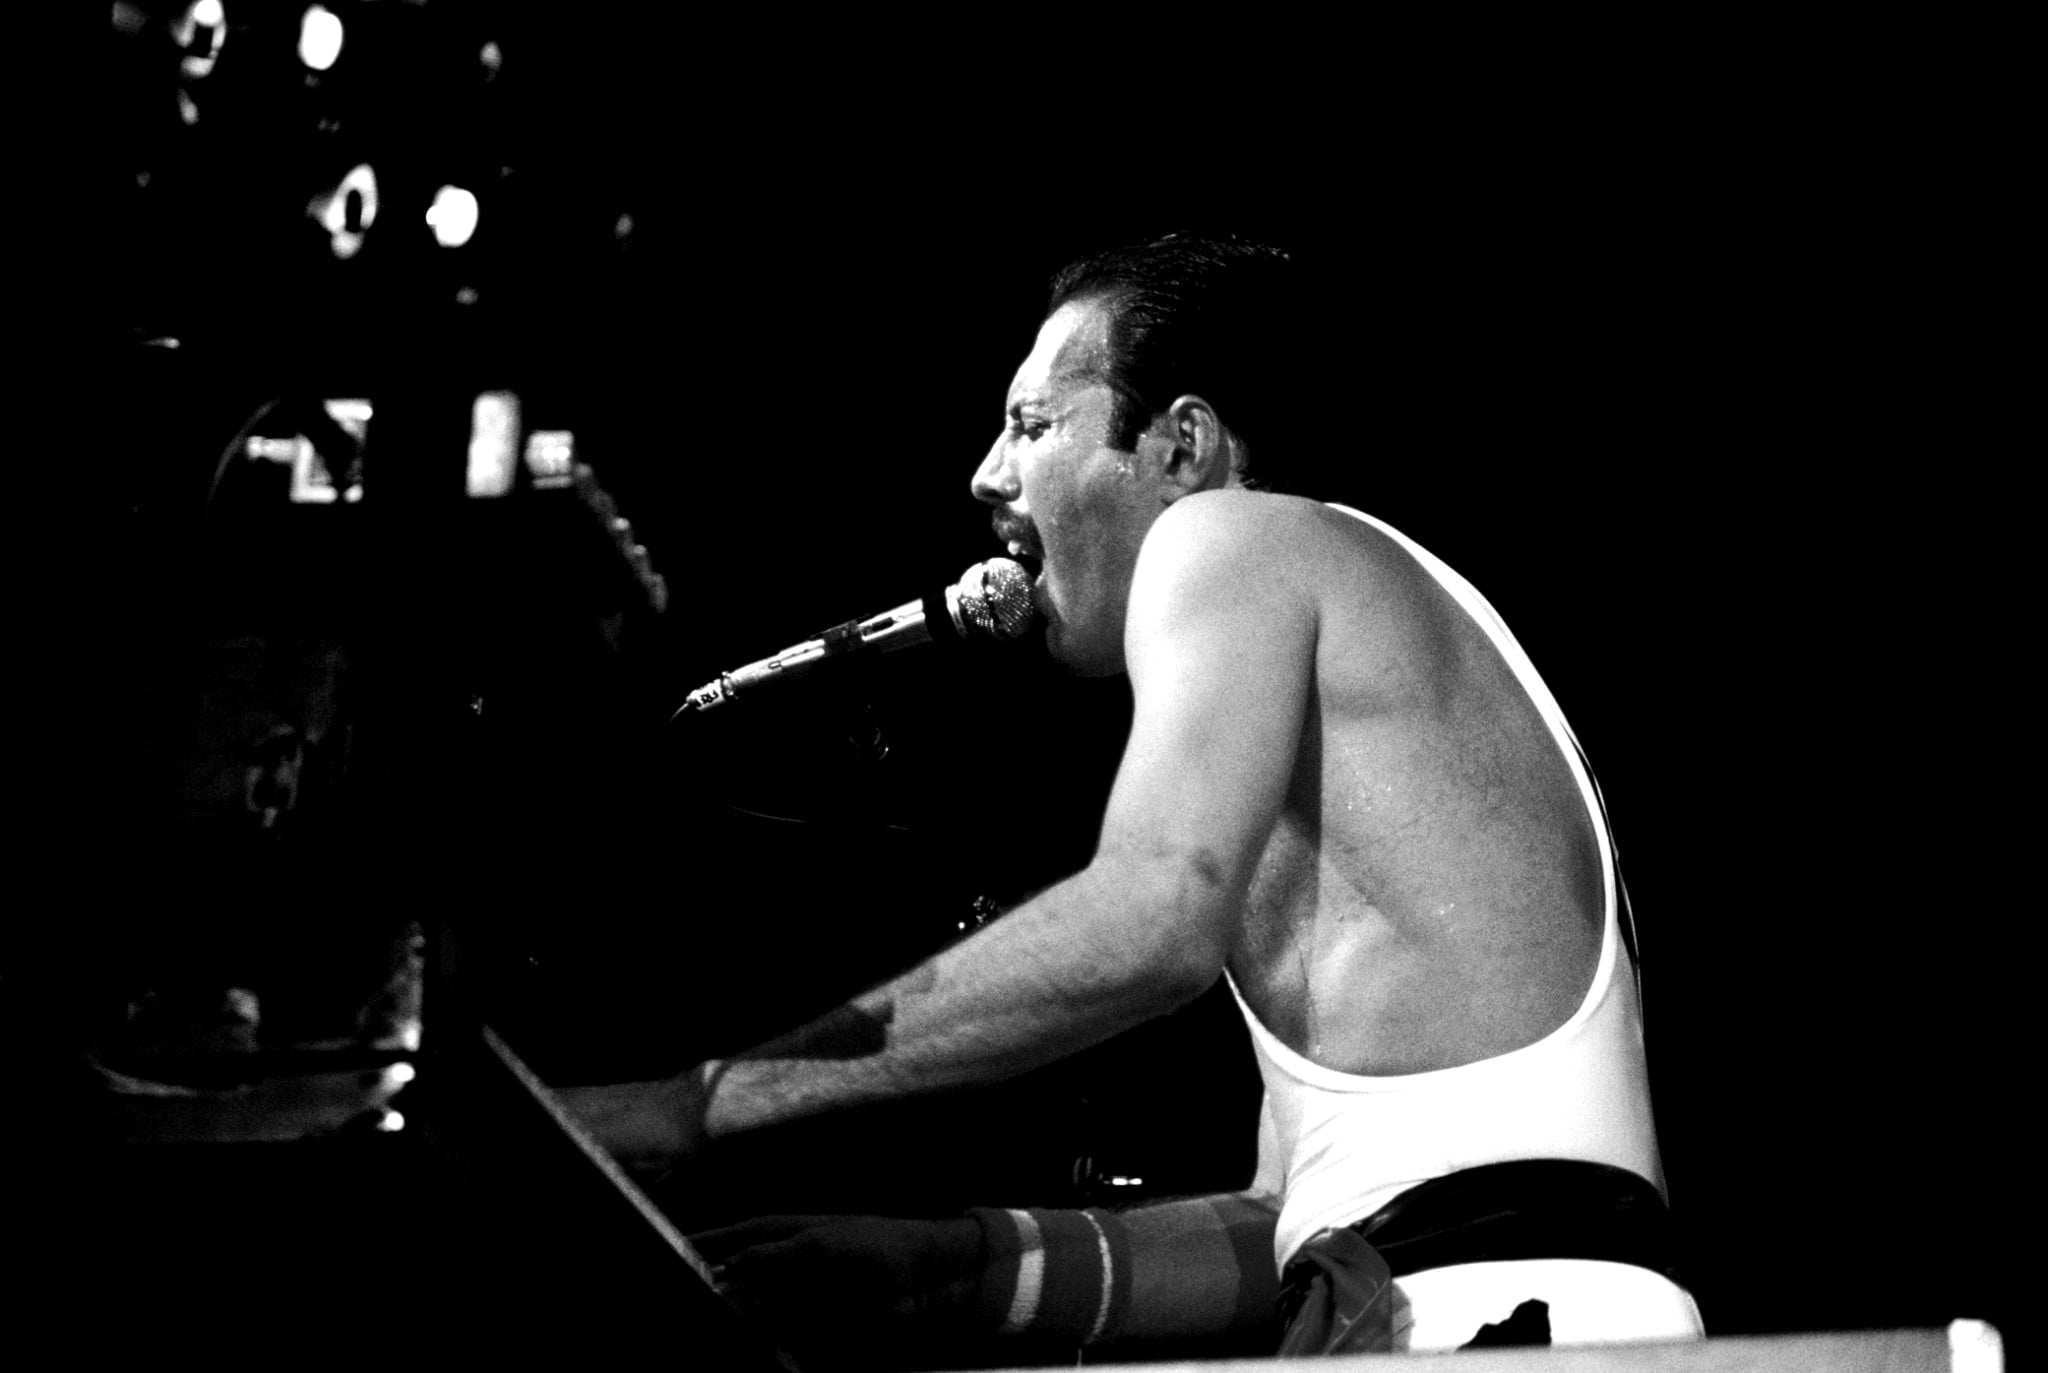 Freddie Mercury, singer of the band Queen, performs at Wembley Arena in London on 7th September 1984.